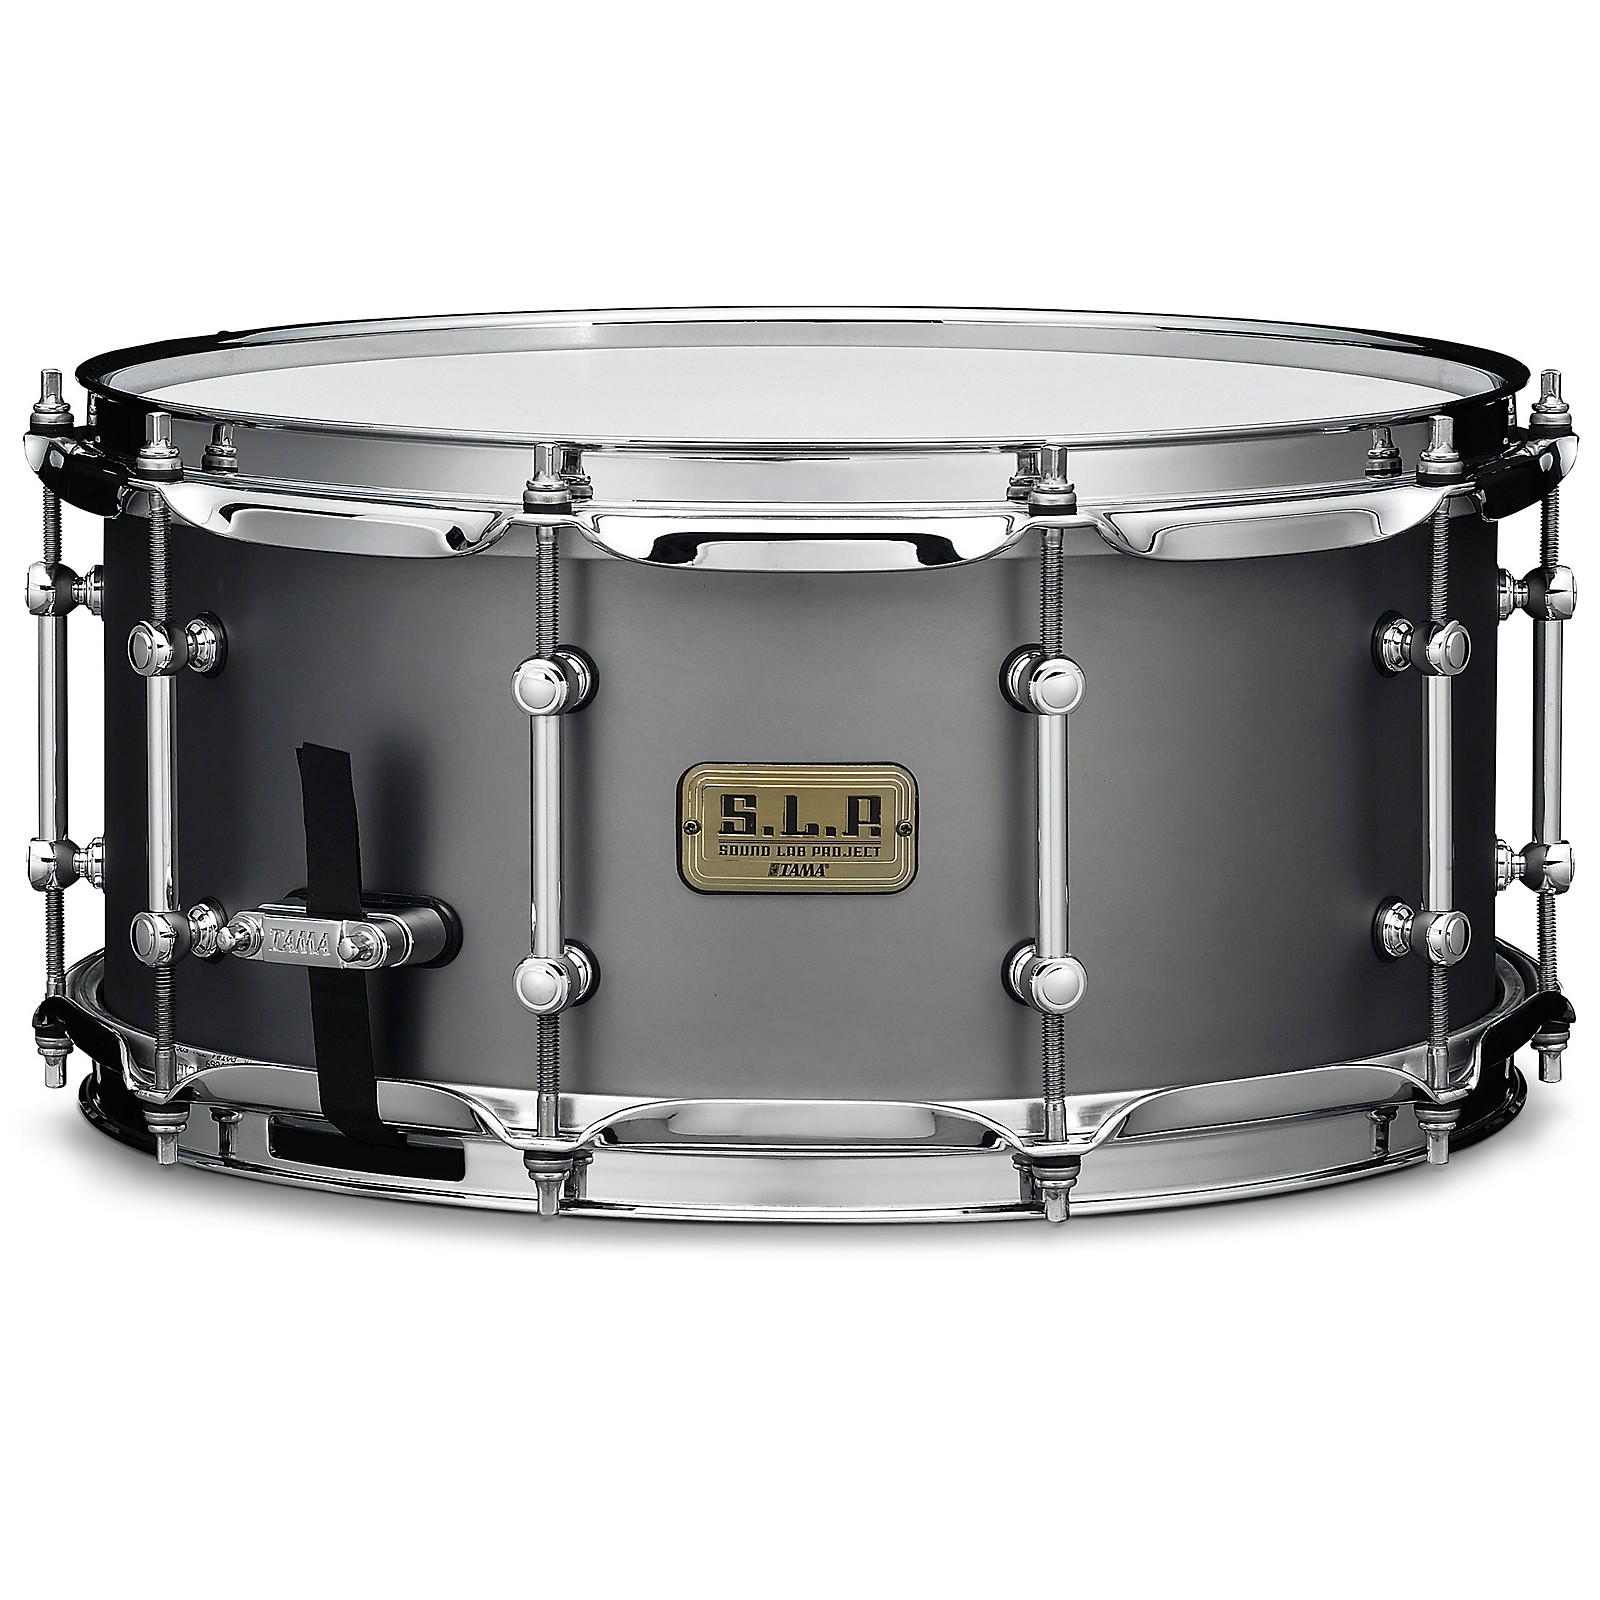 TAMA S.L.P. Sonic Stainless Steel Snare Drum